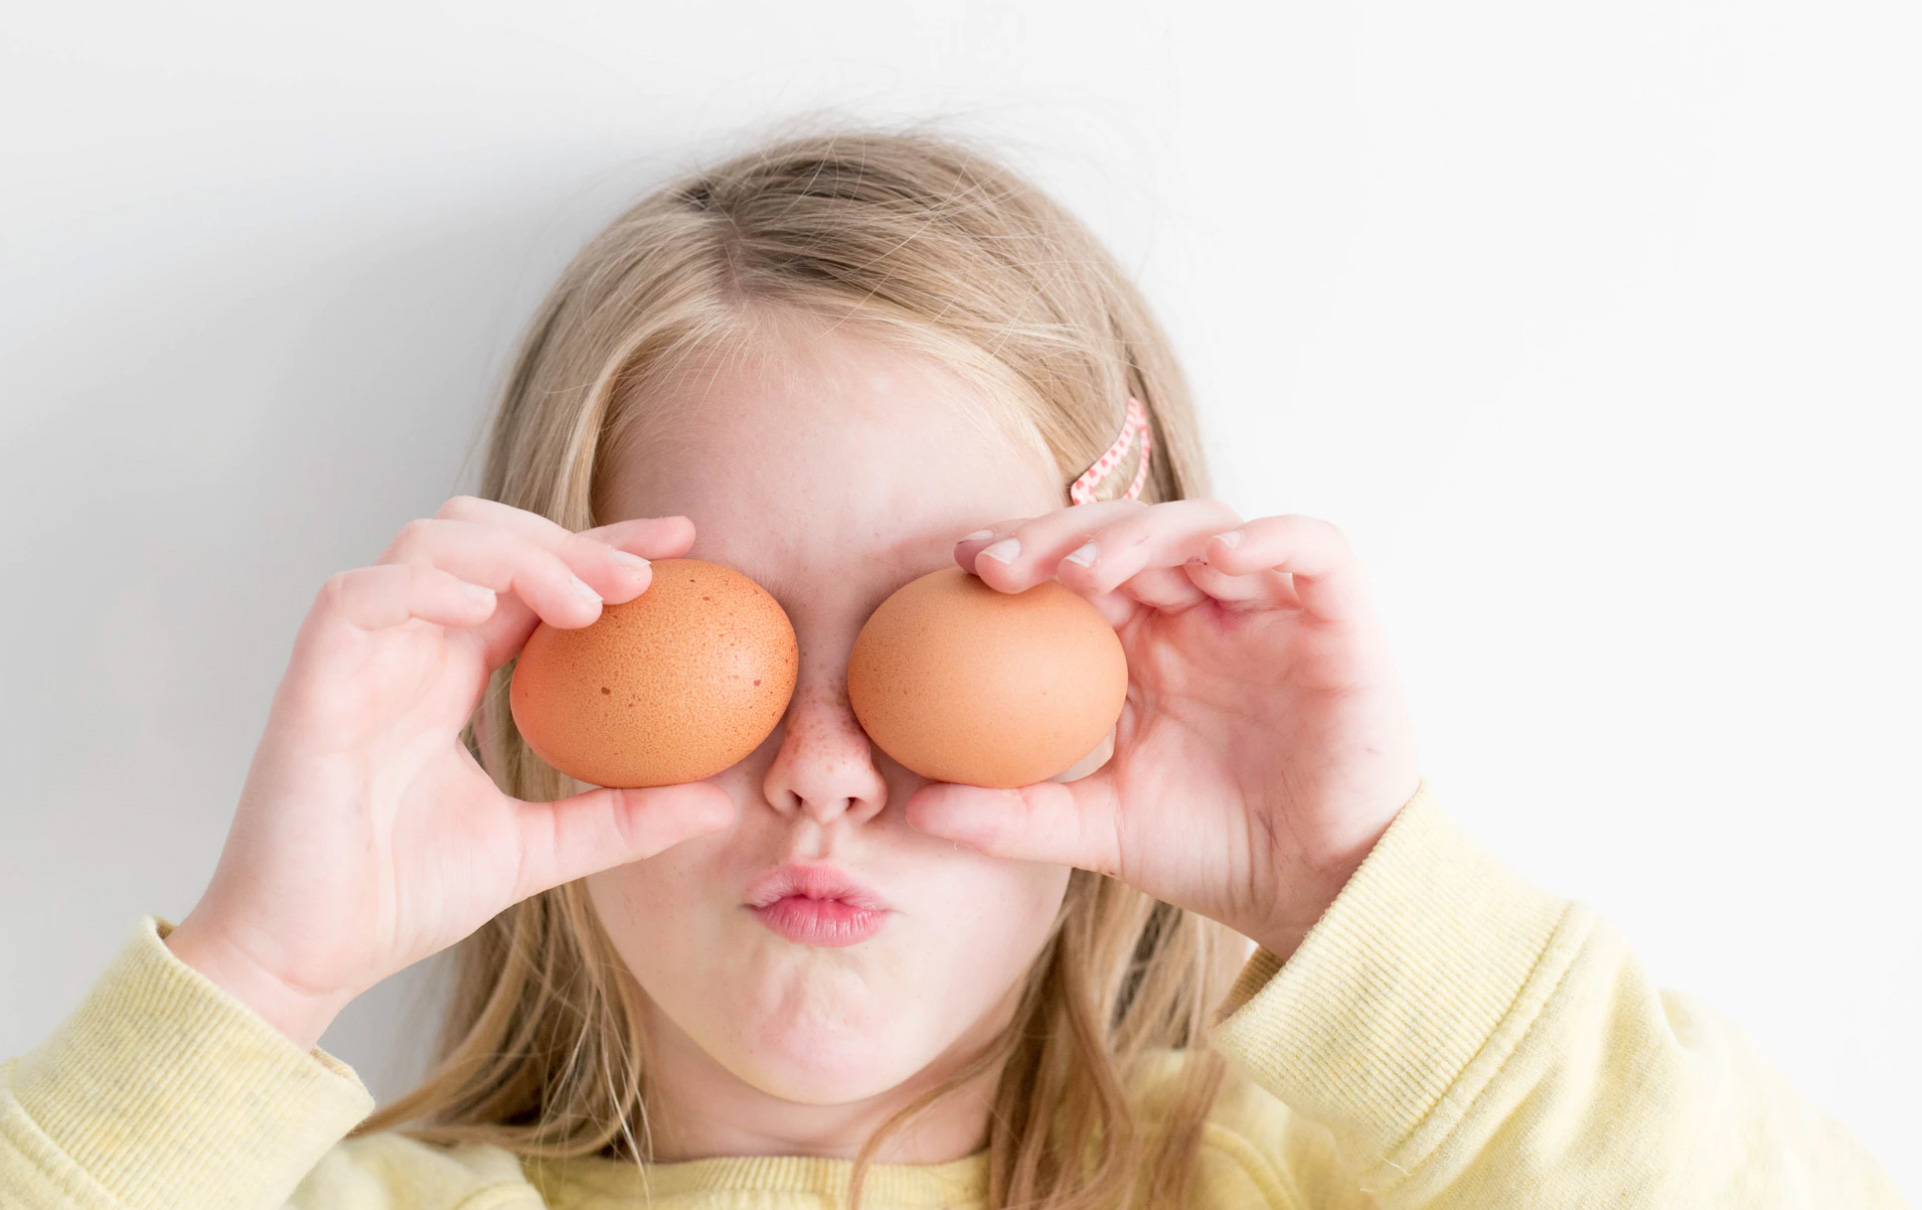 child holding 2 eggs in front of her eyes